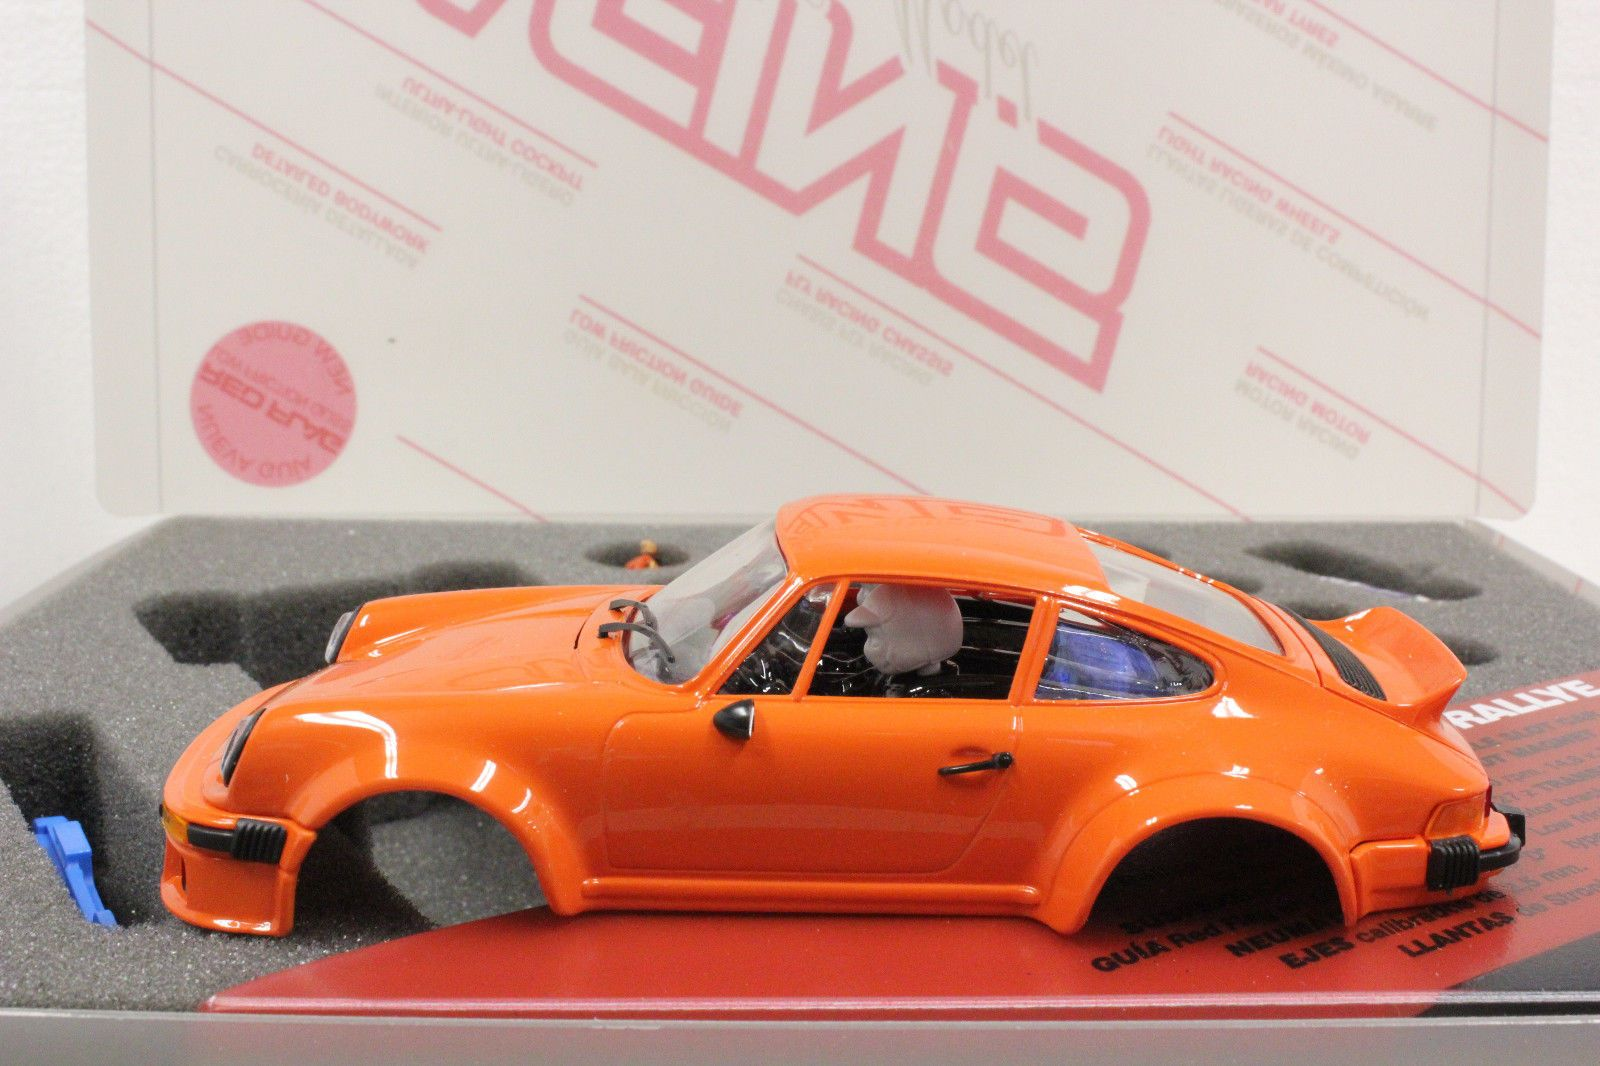 US 79.95 New in Toys & Hobbies, Slot Cars, 1/32 Scale